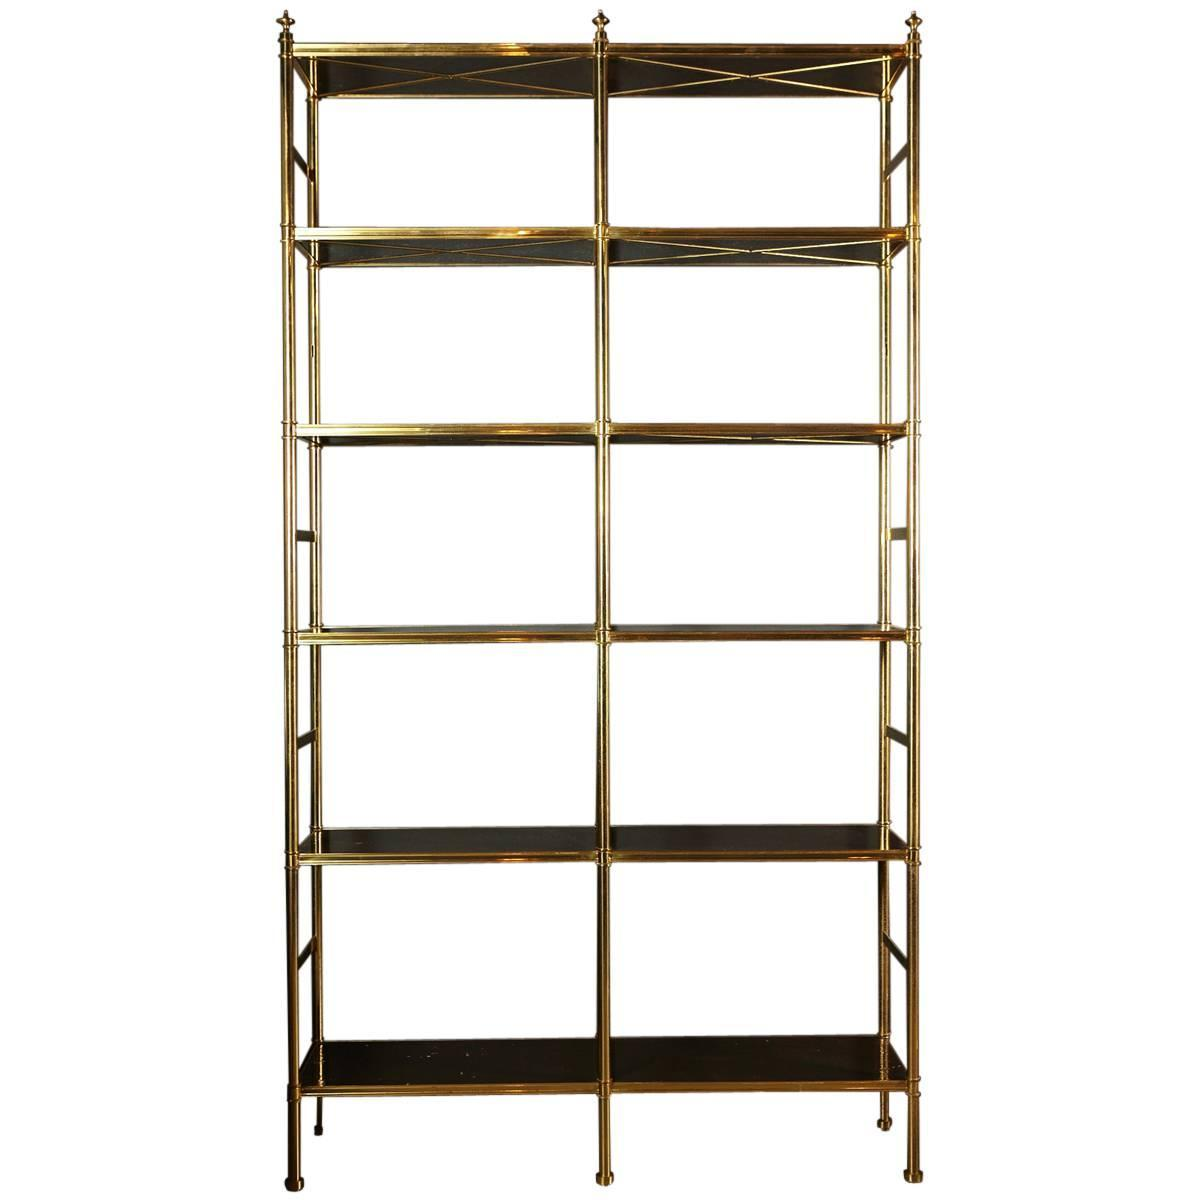 Original Billy Baldwin Tubular Brass Bookshelf With 12